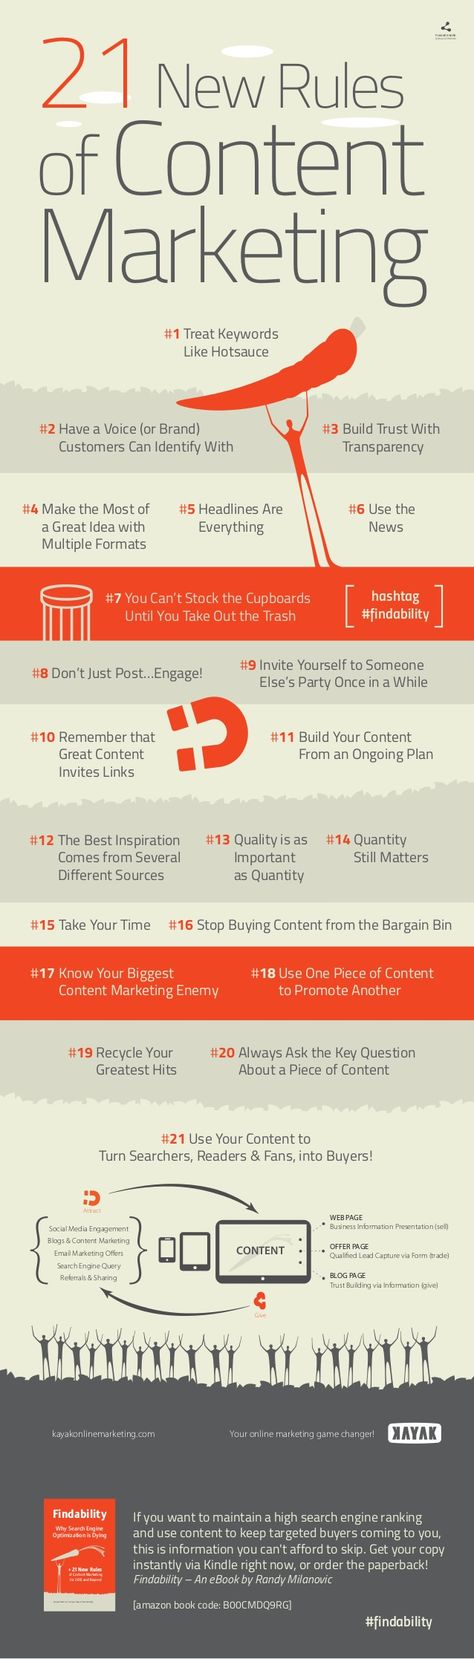 Infographic: Findability – 21 New Rules of Content Marketing (The Marketing Technology Blog)